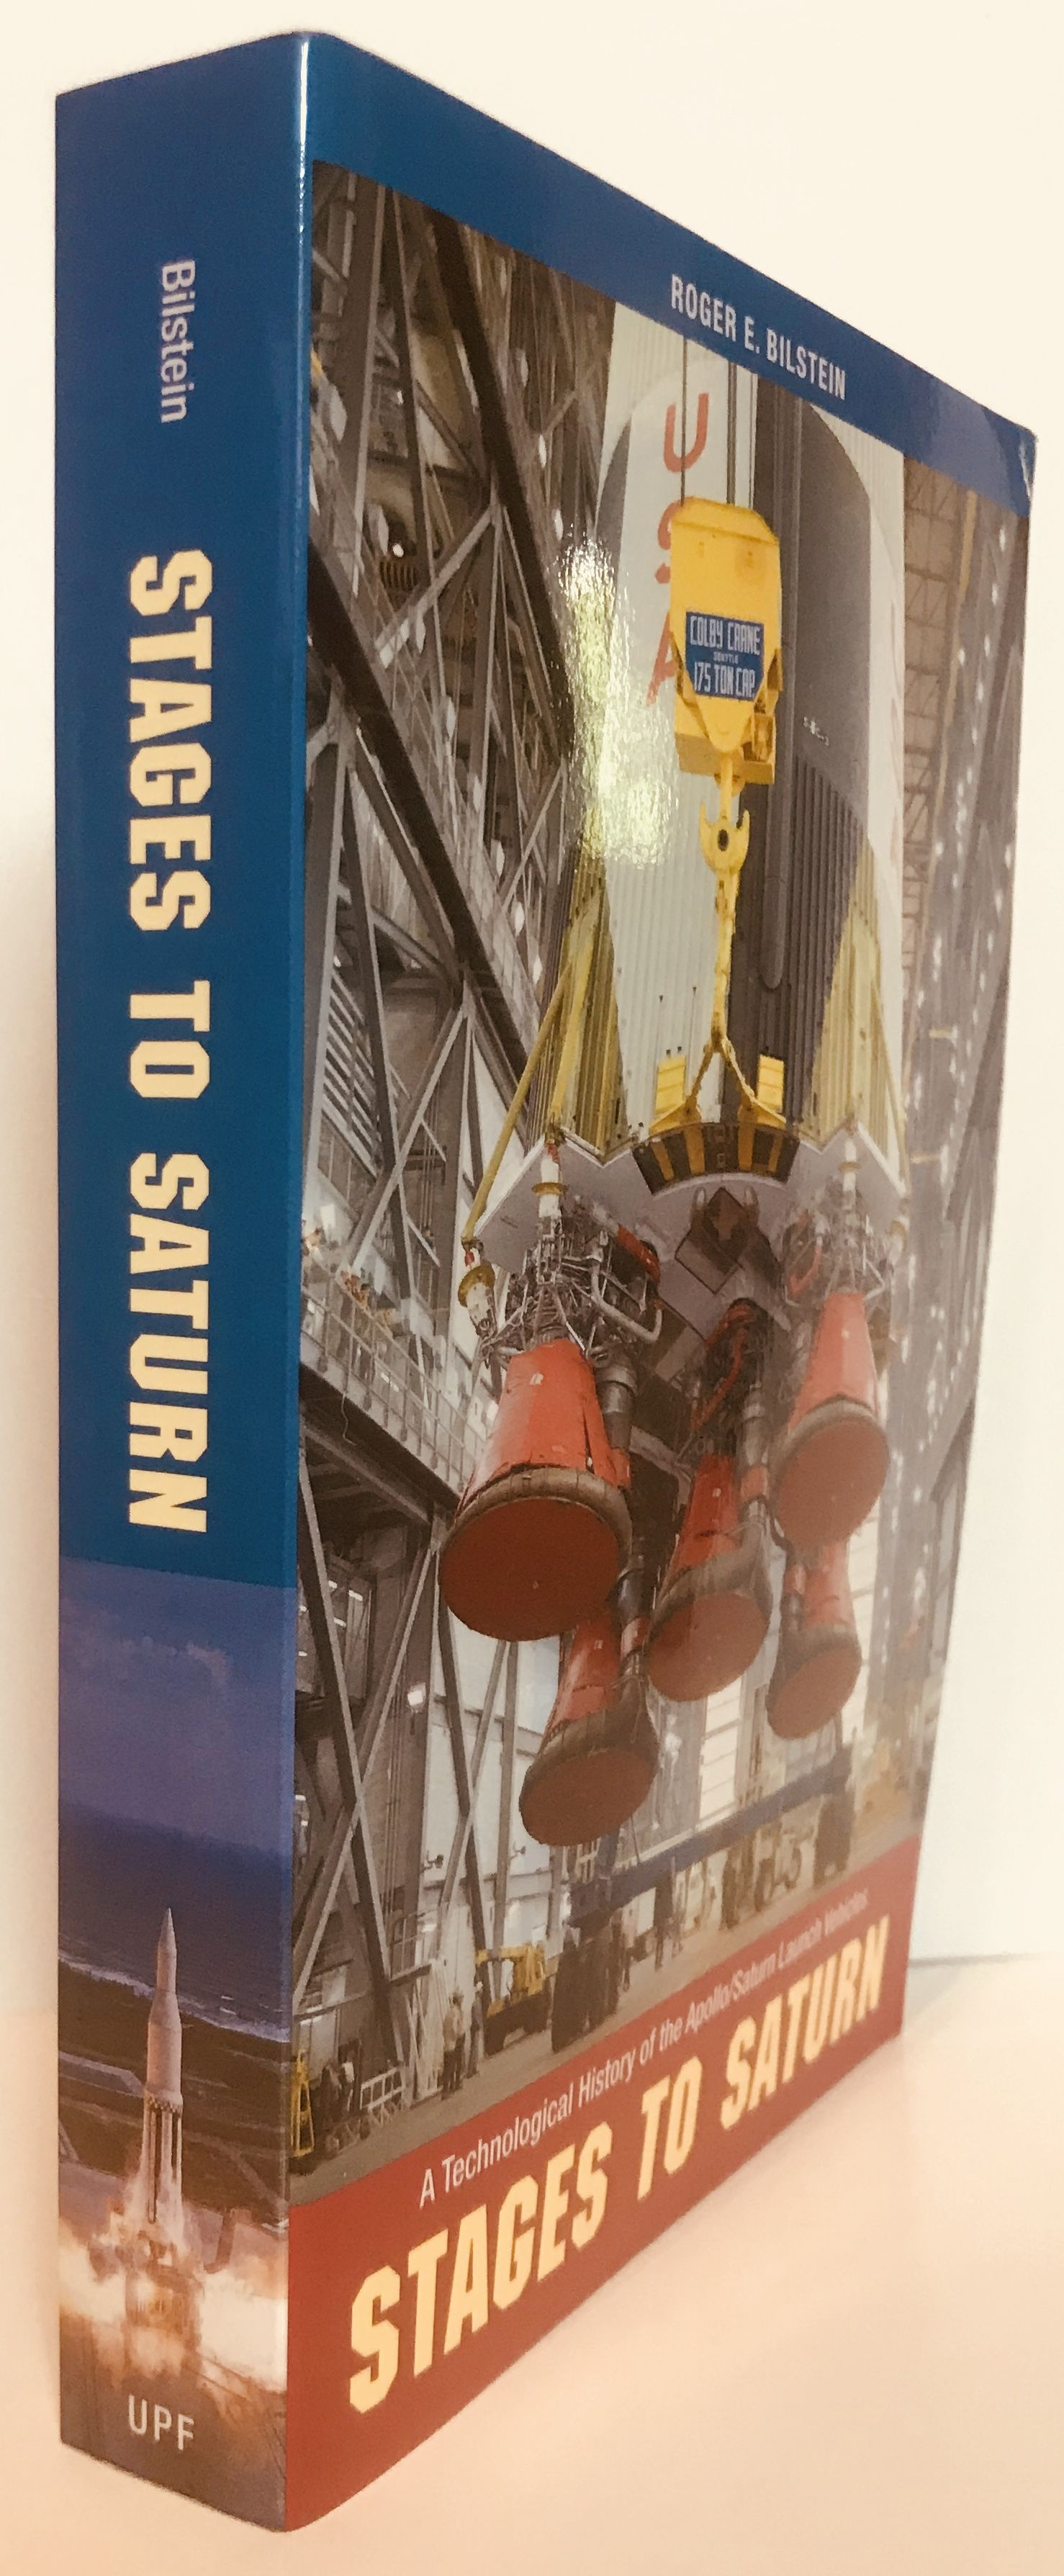 Stages to Saturn: A Technological History of the Apollo/Saturn Launch Vehicles, Bilstein, Roger